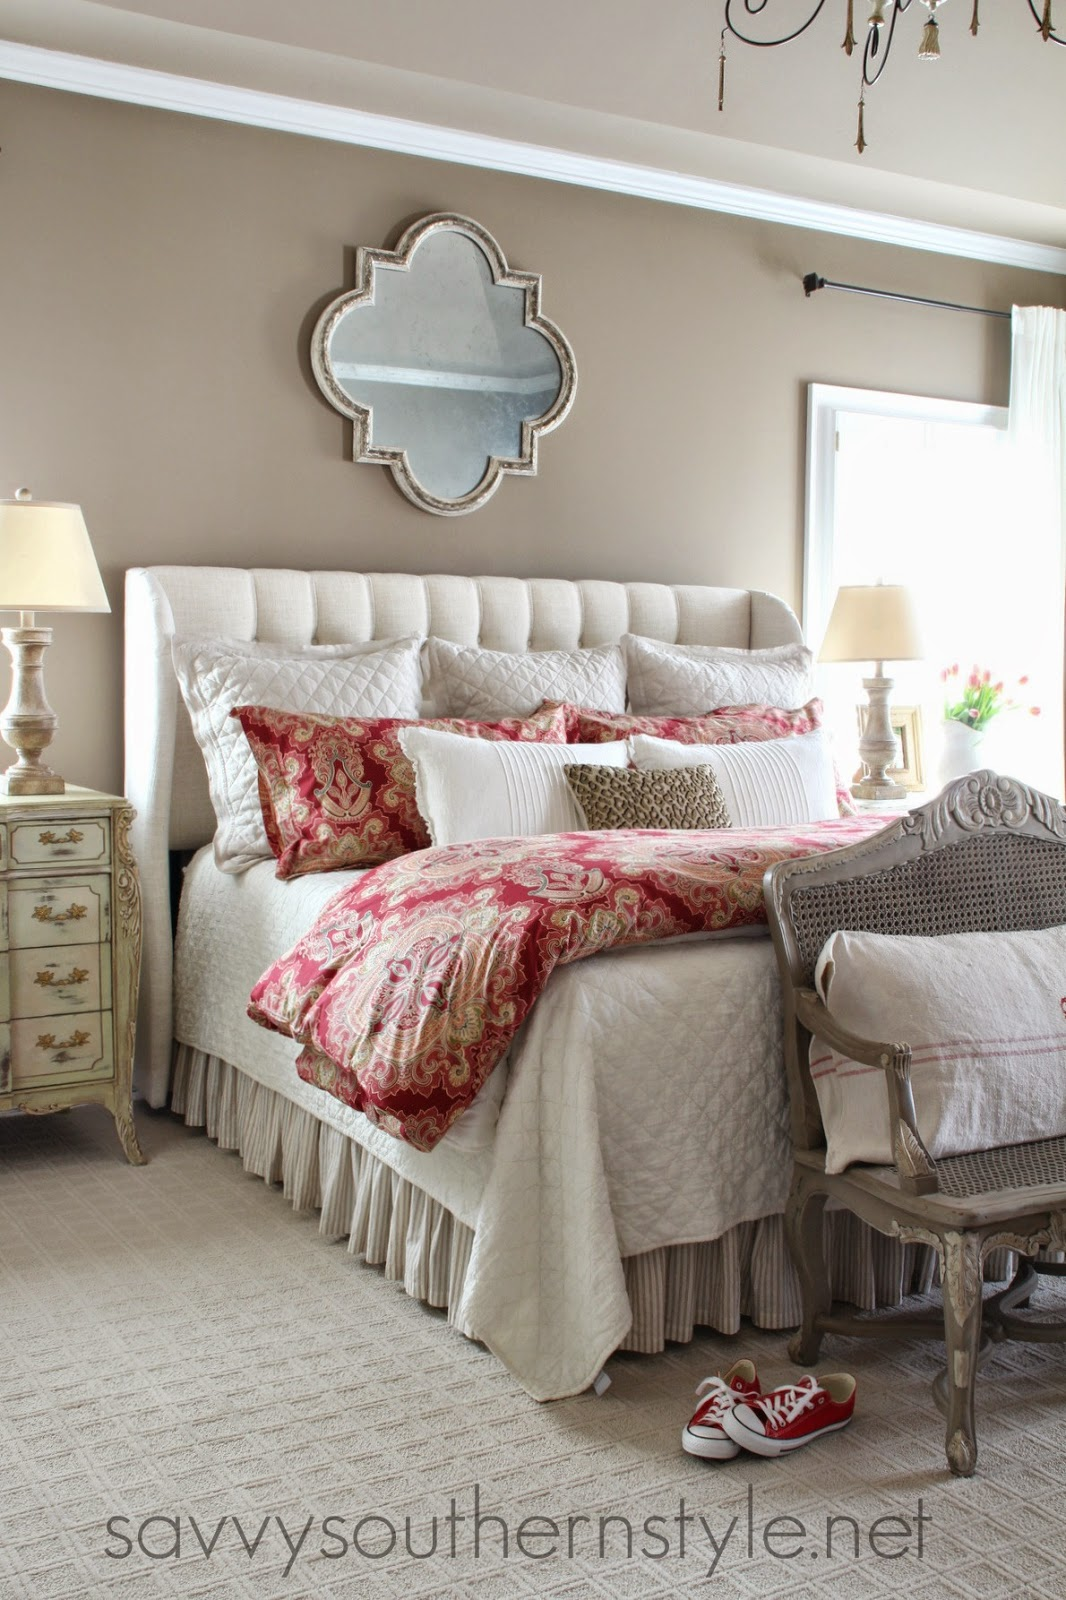 Savvy southern style my home 39 s paint colors for Southern style bedroom